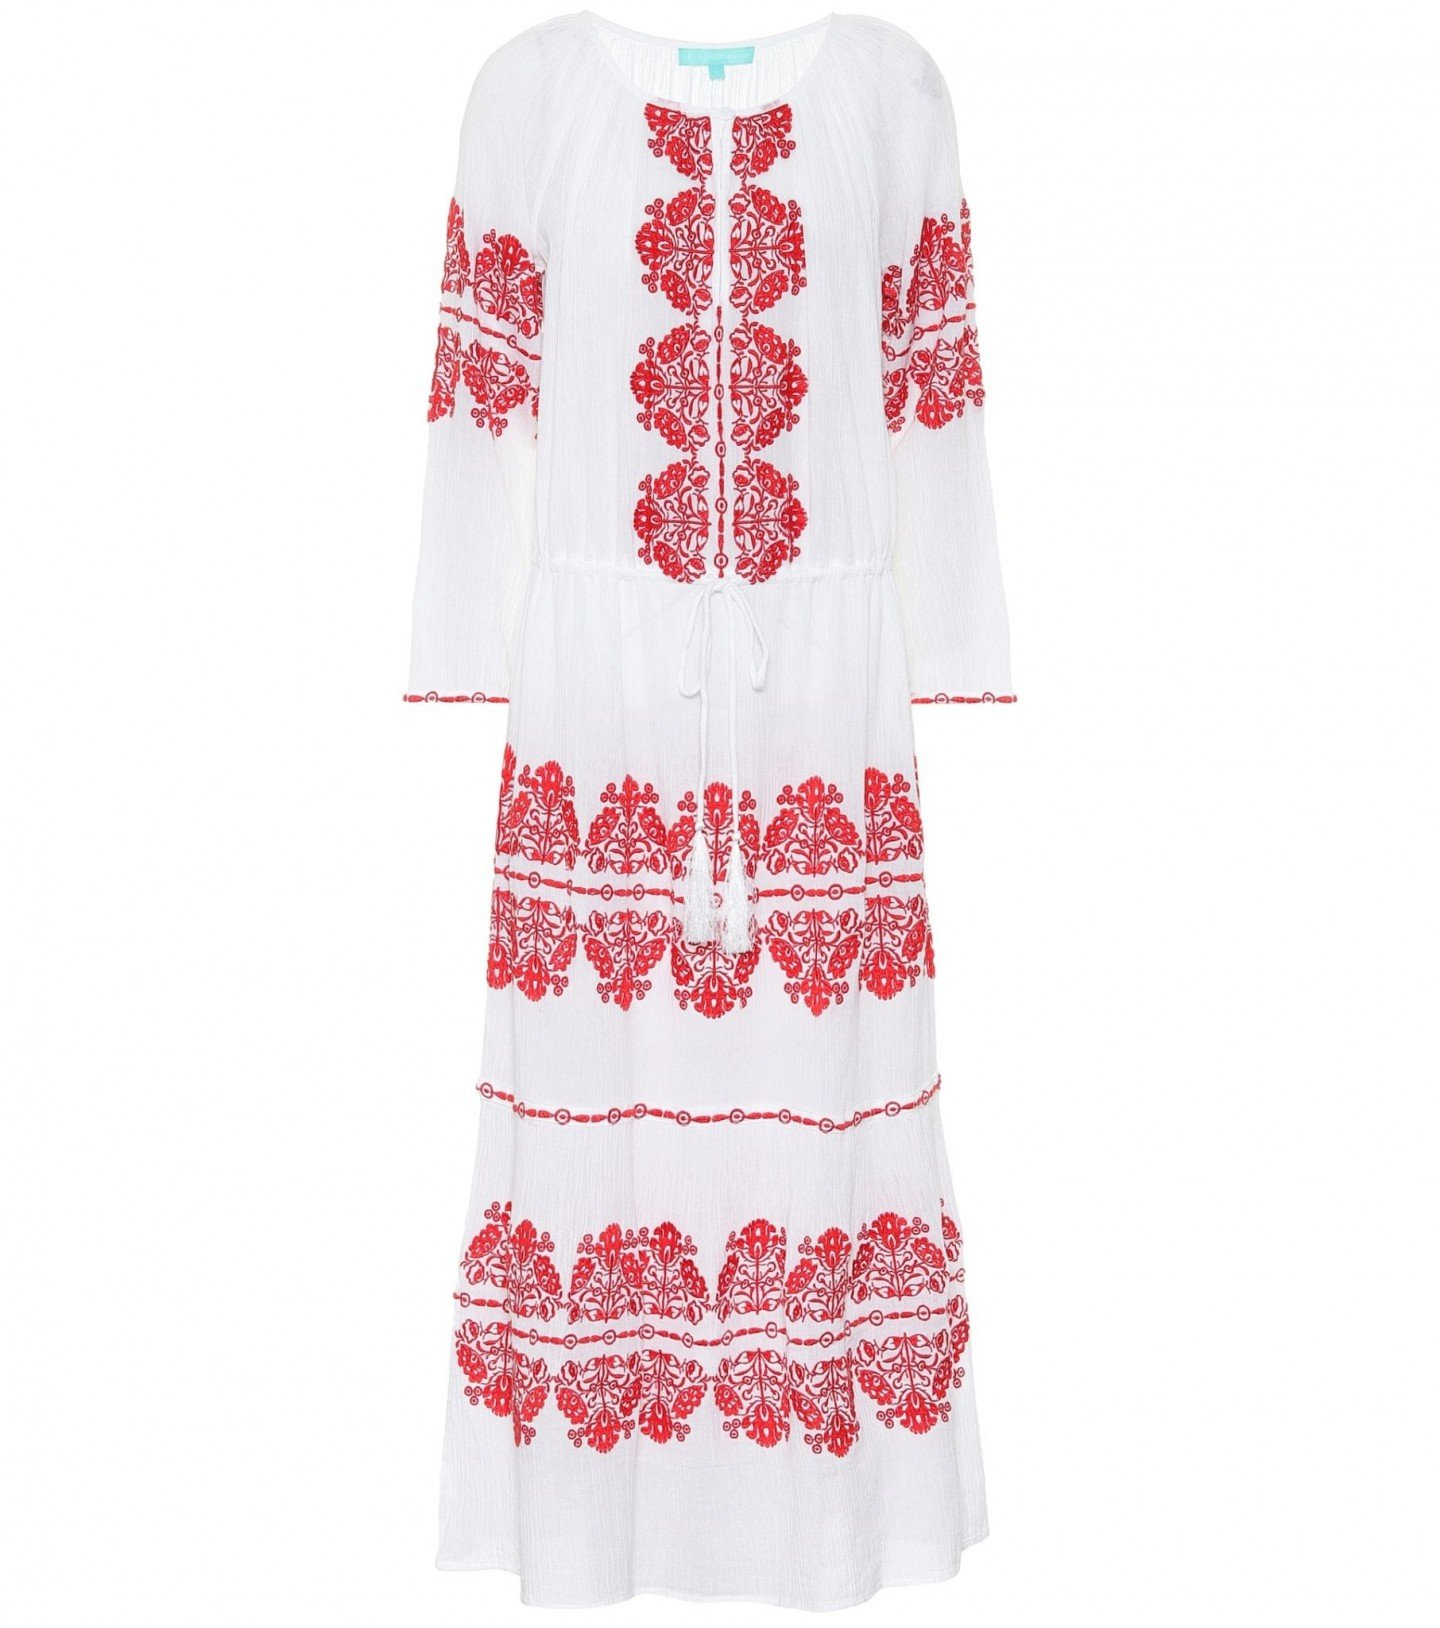 MELISSA ODABASH Lela Embroidered Cotton Kaftan Dress